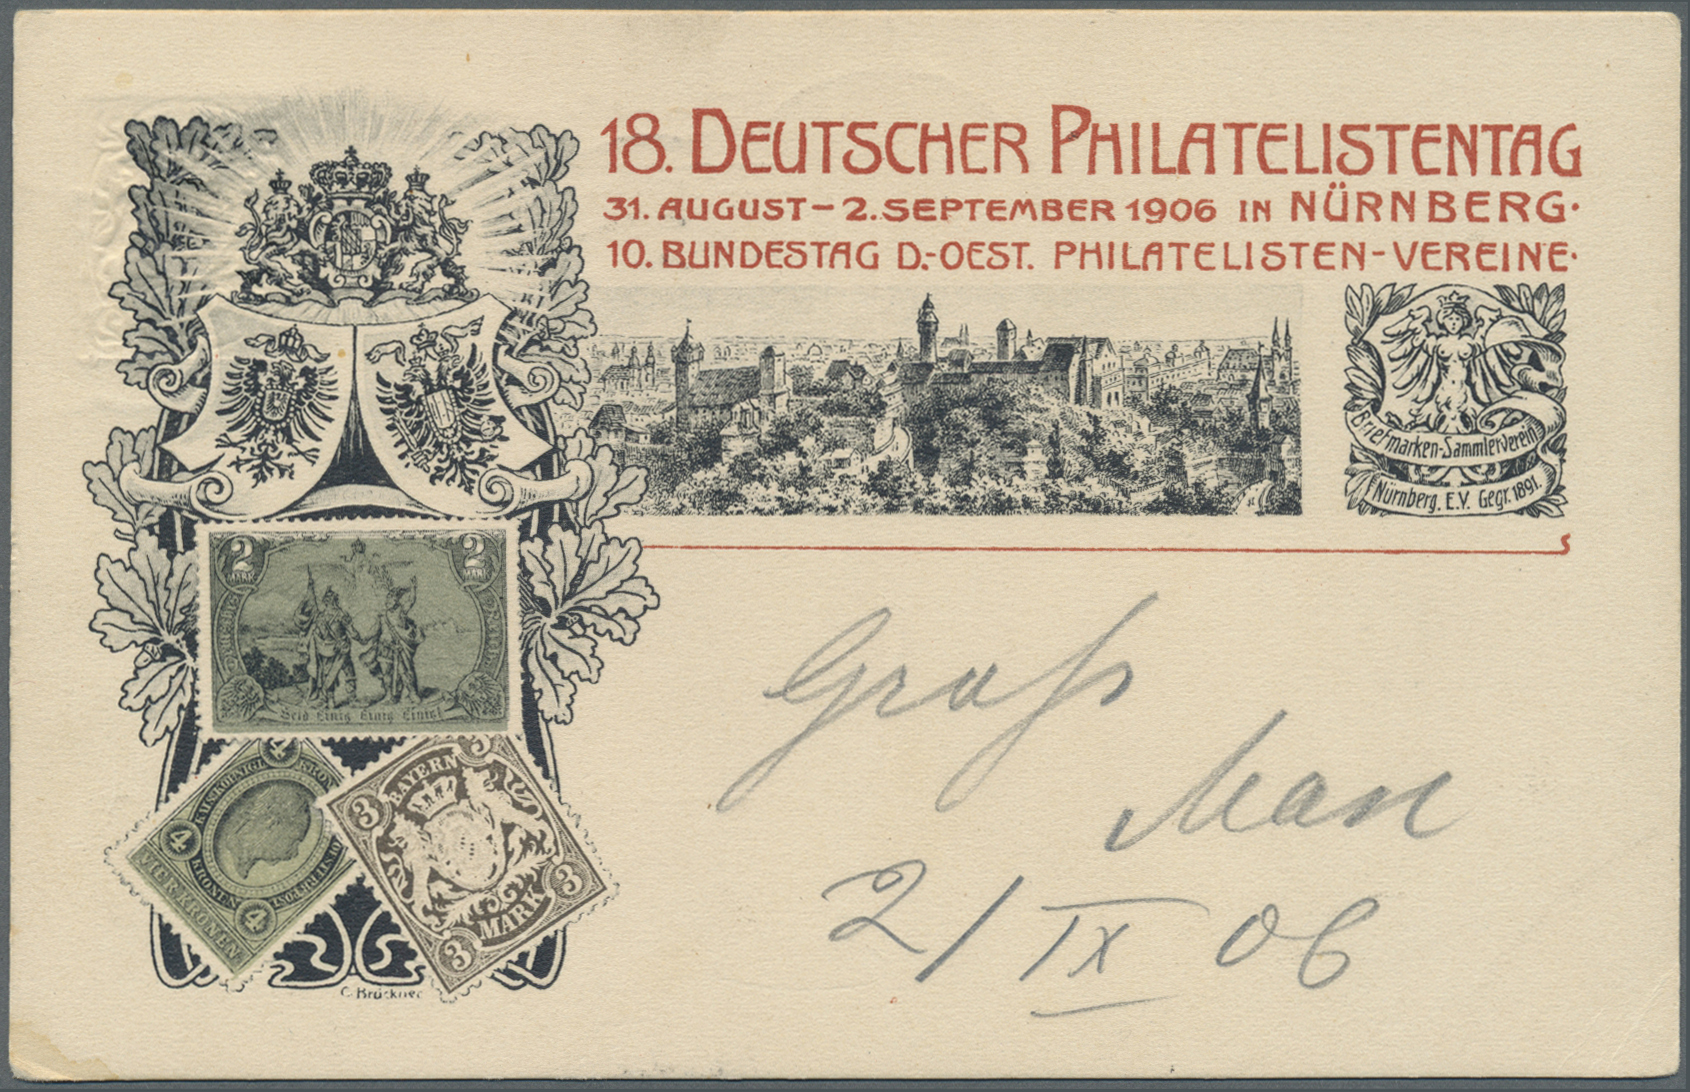 Lot 36327 - bayern - ganzsachen  -  Auktionshaus Christoph Gärtner GmbH & Co. KG Collections Germany,  Collections Supplement, Surprise boxes #39 Day 7